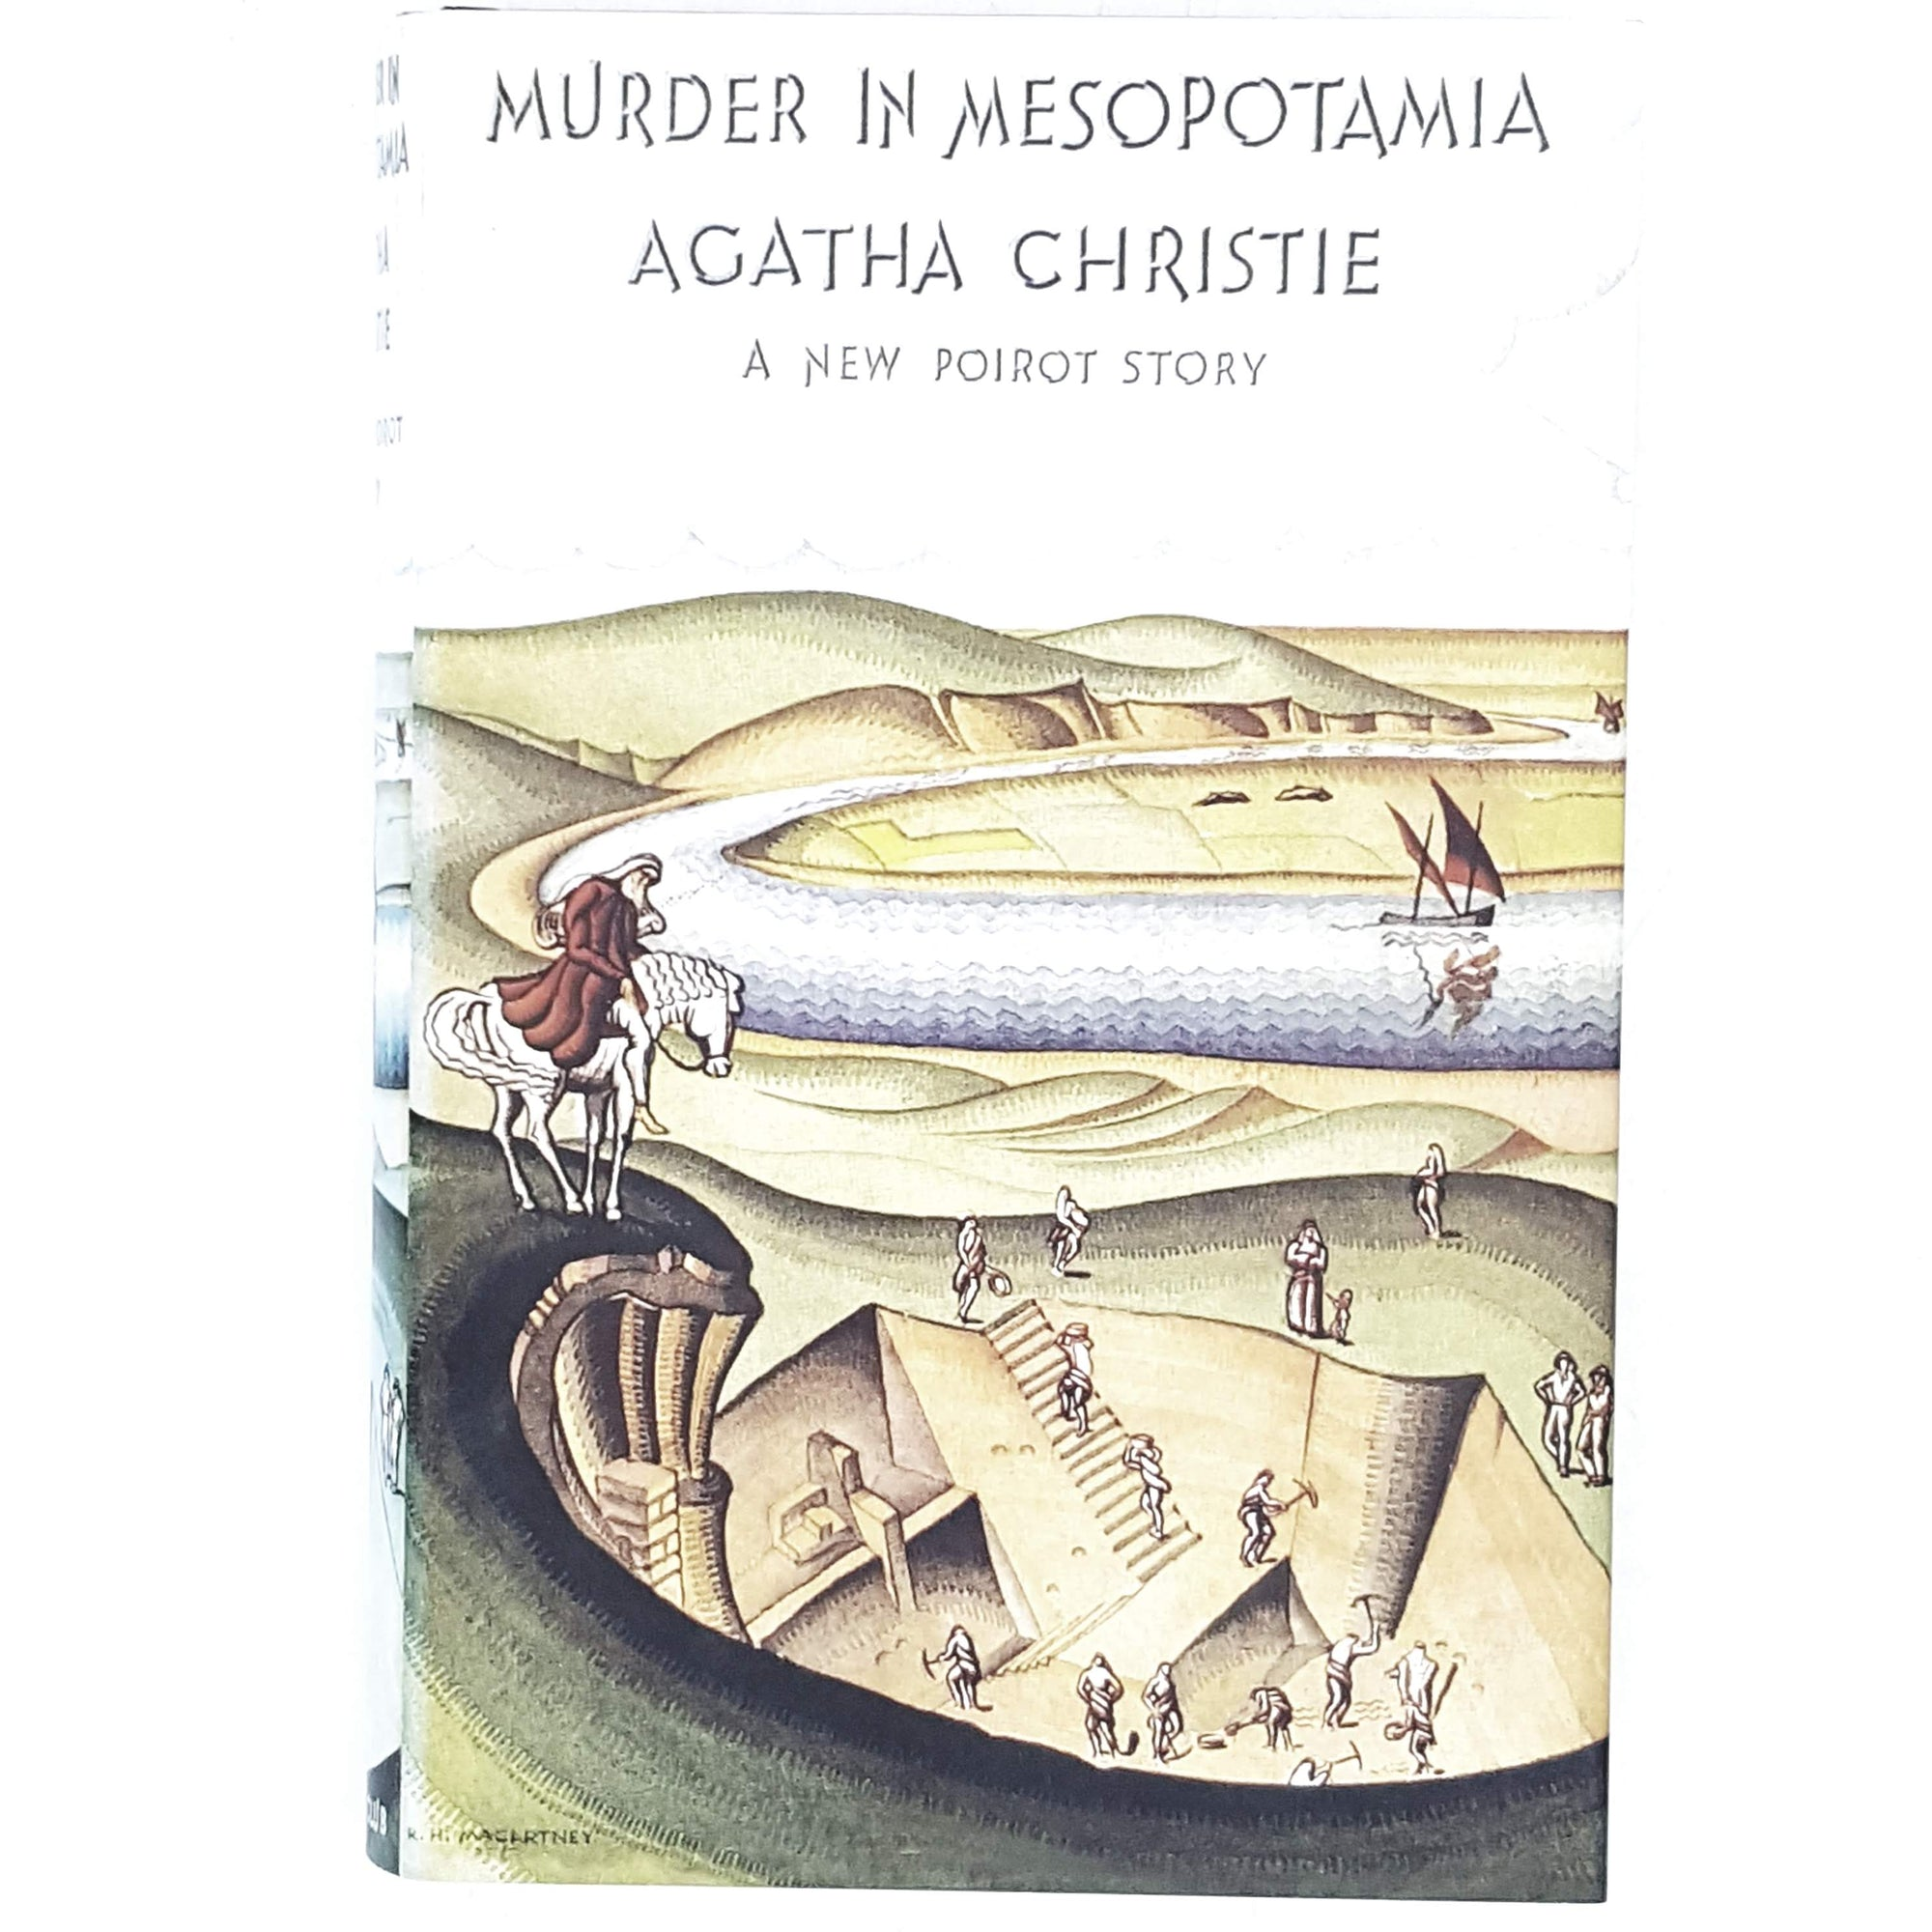 Agatha Christie's Murder in Mesopotamia